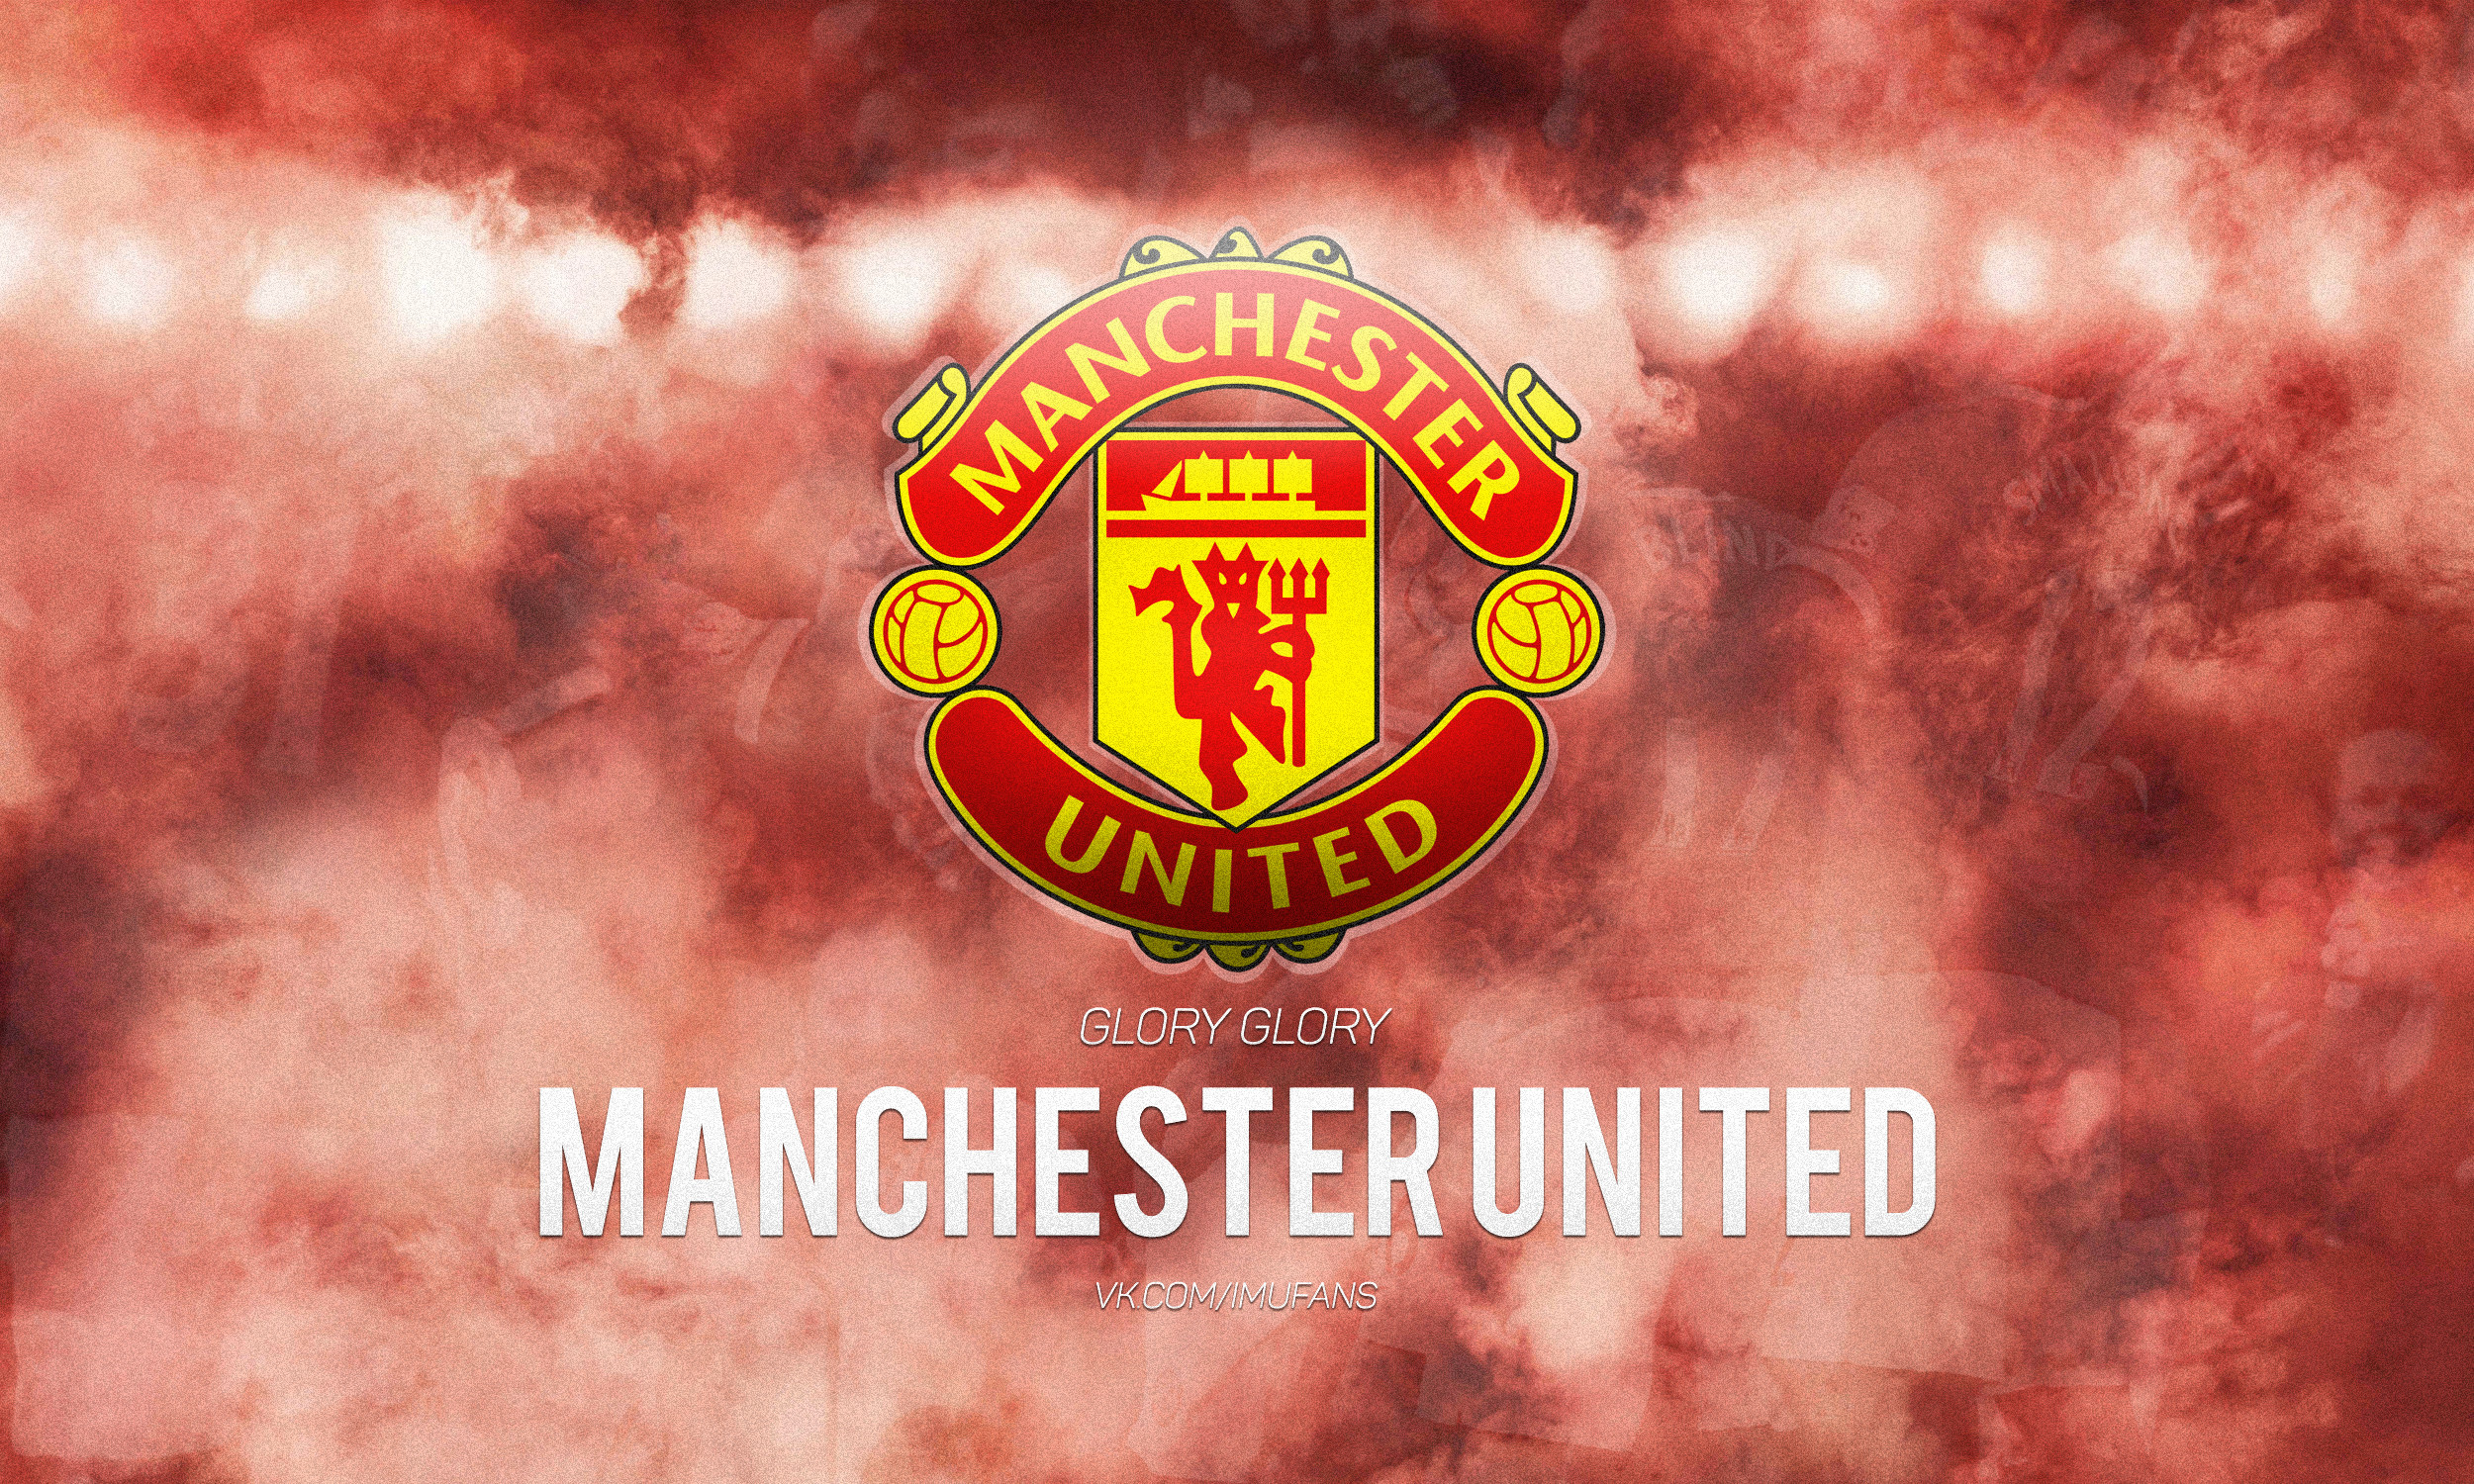 71 Man Utd Wallpapers on WallpaperPlay 2500x1500